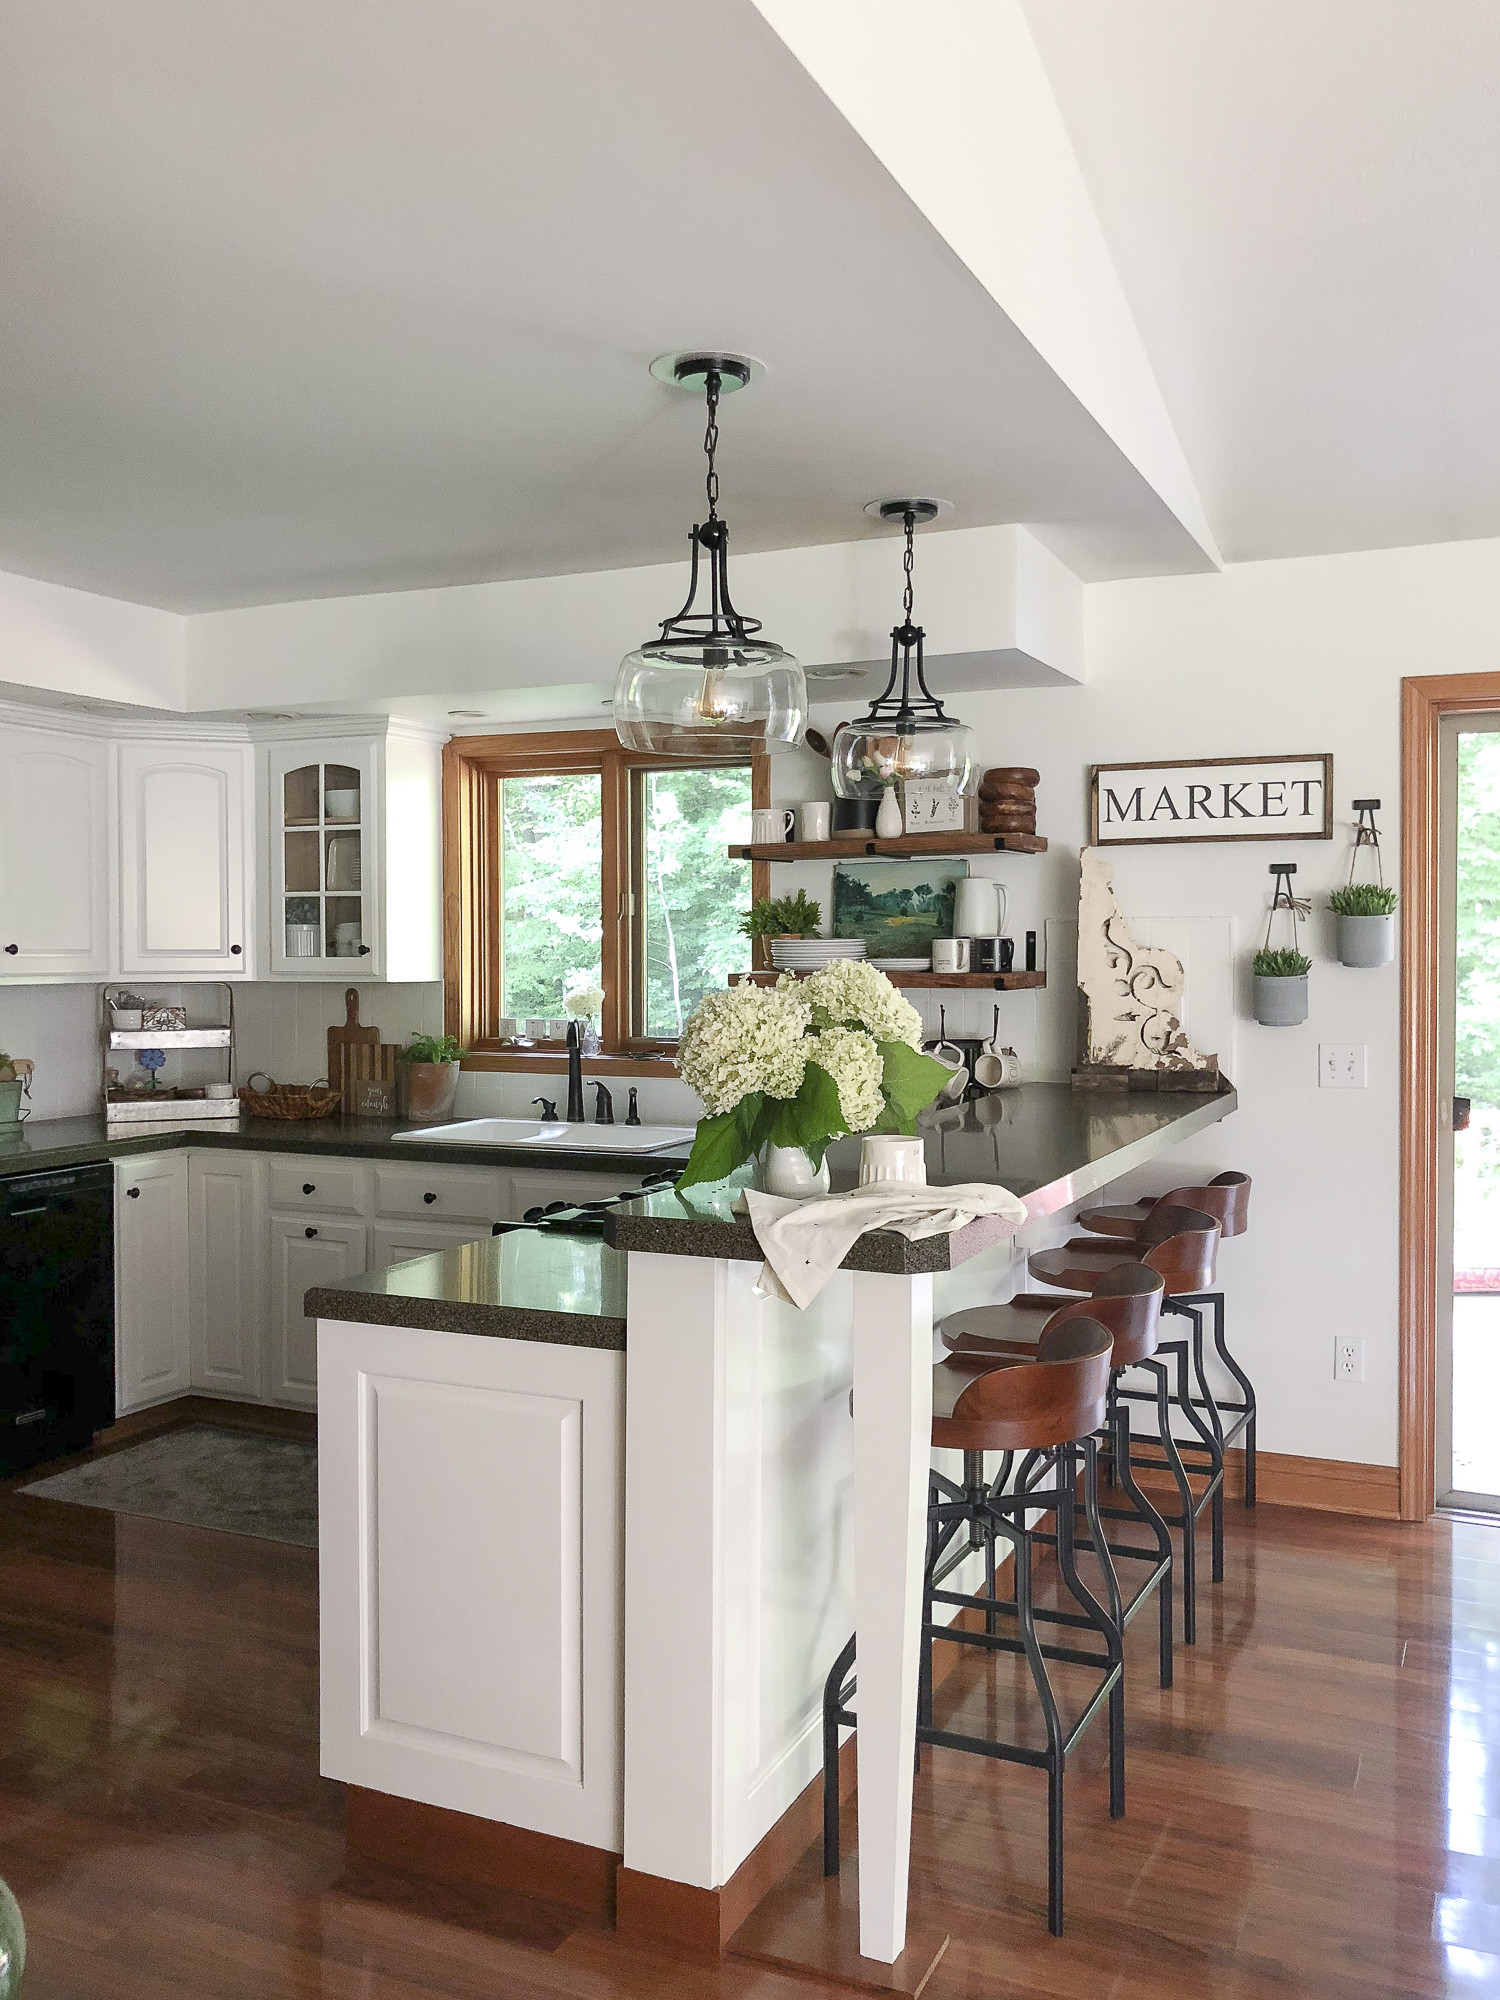 Kitchen Remodeling Budgets  Kitchen Remodel on a Bud The Reveal